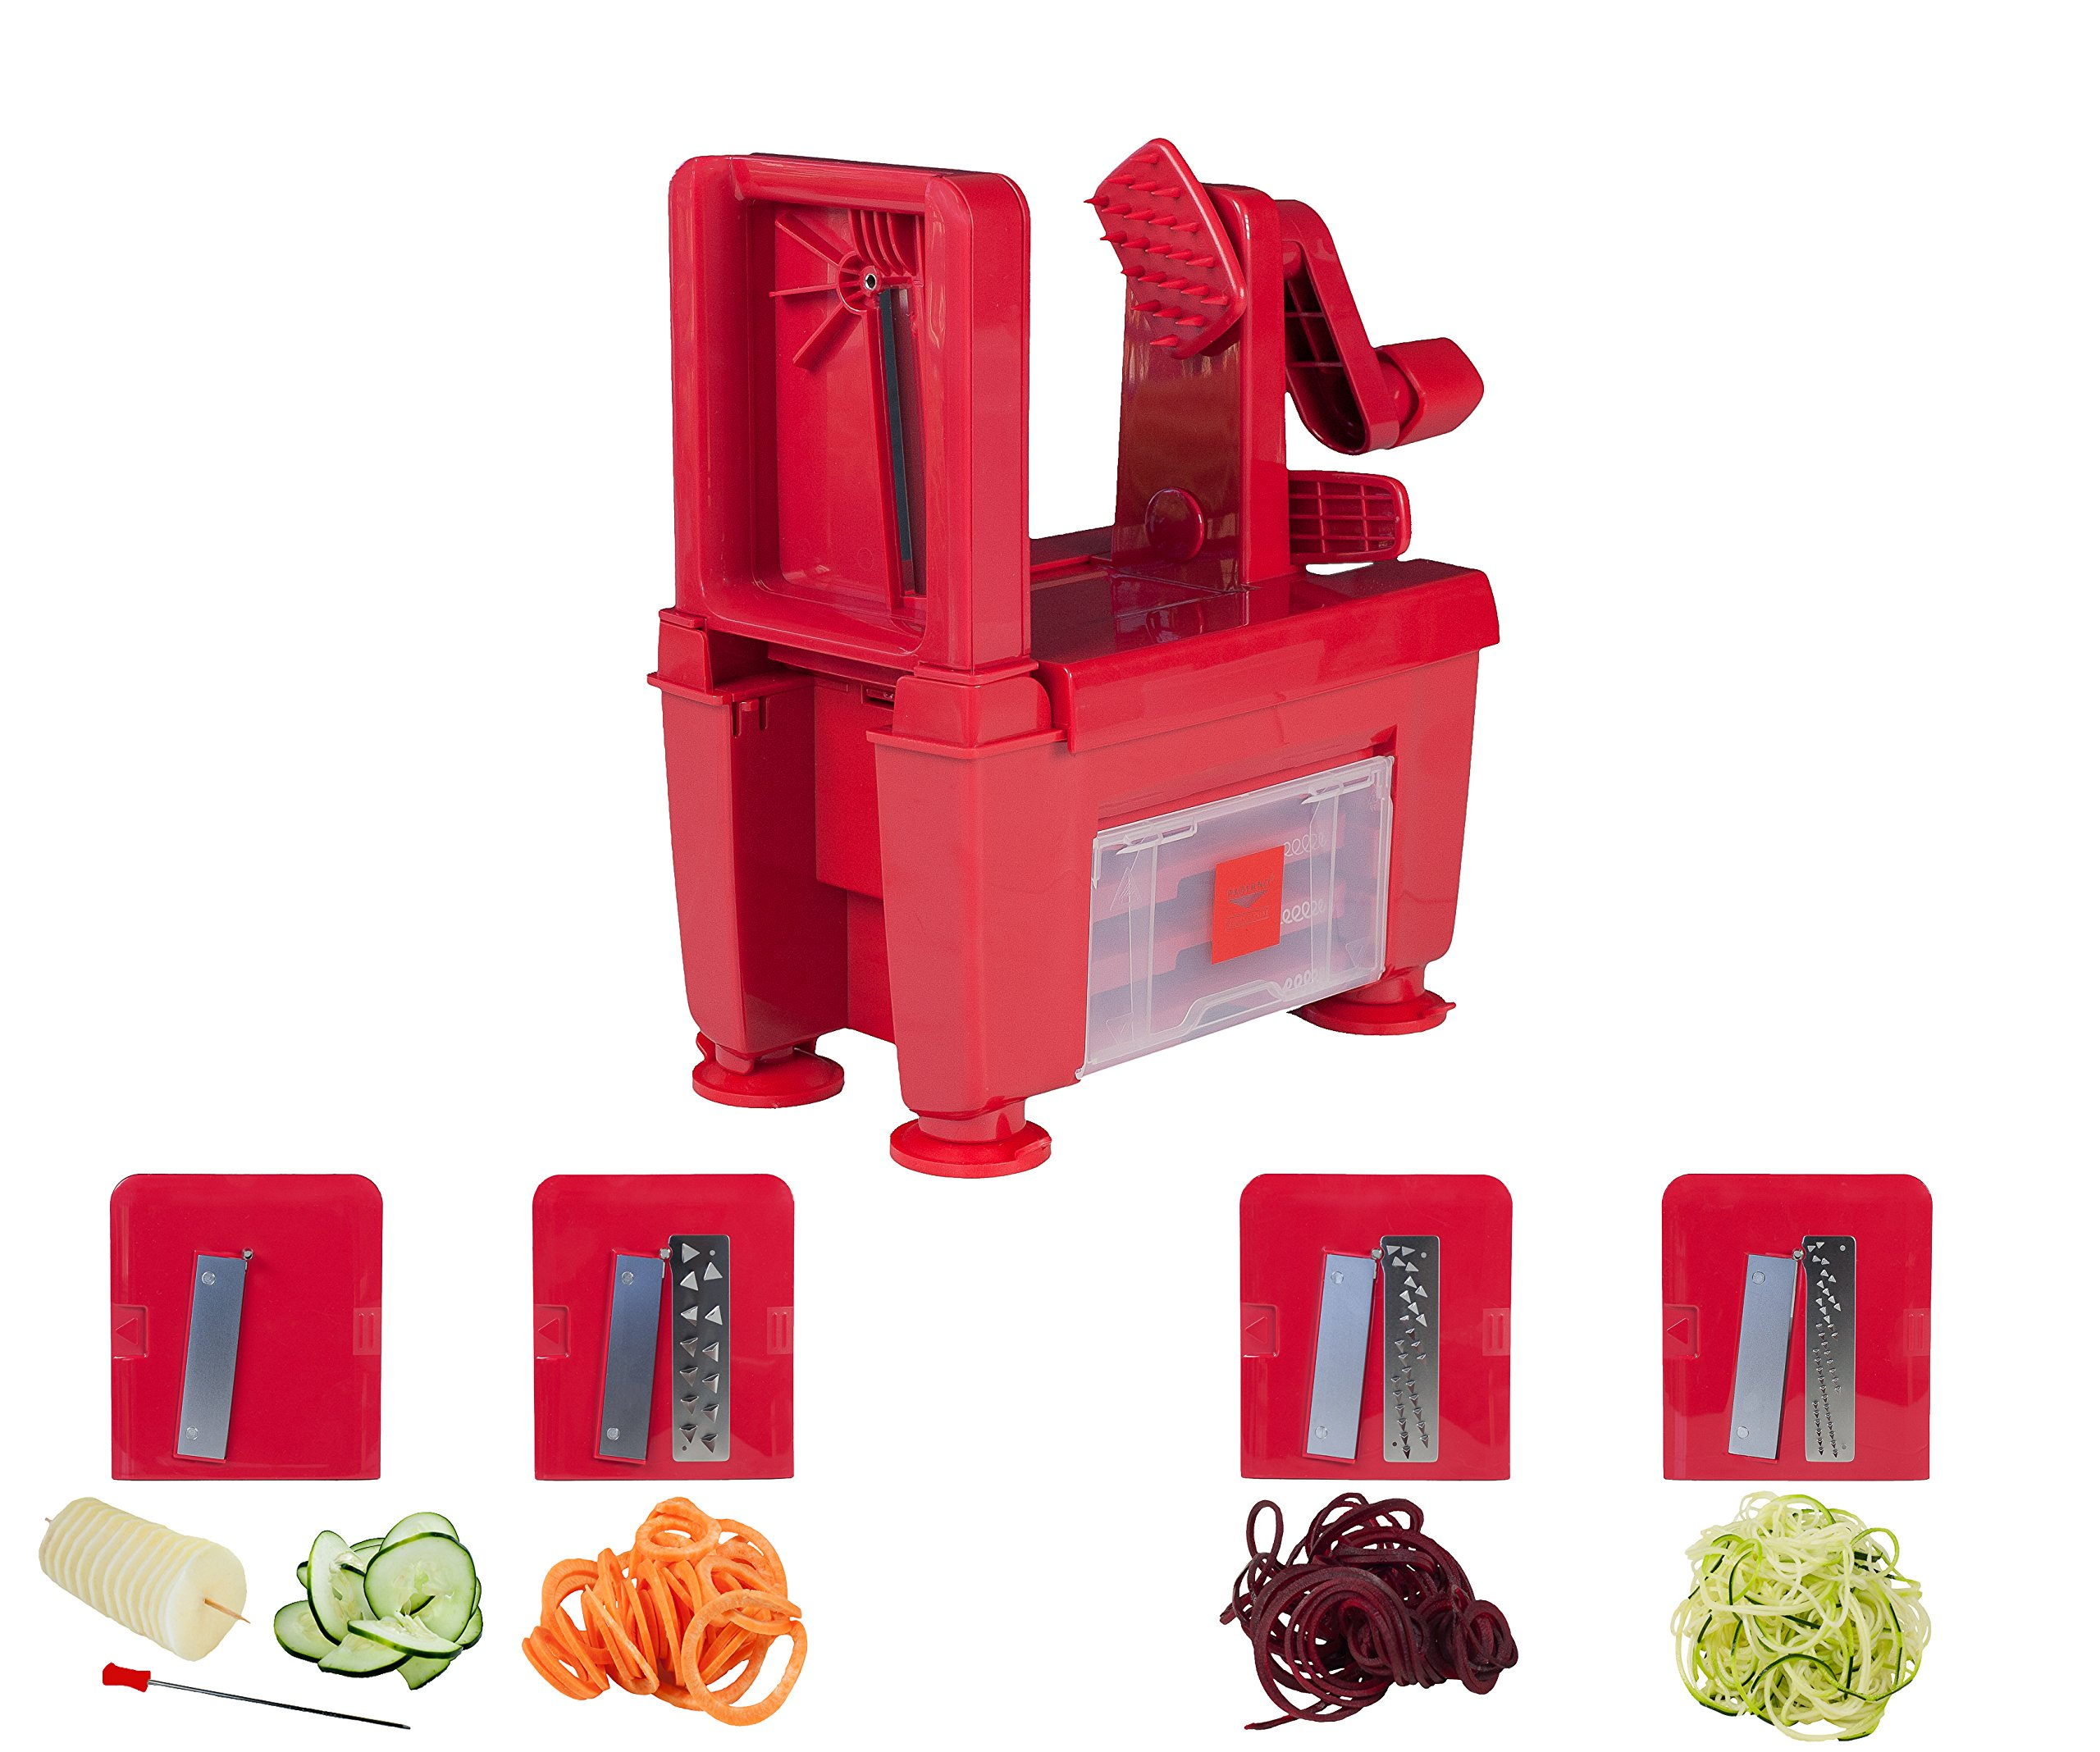 Paderno World Cuisine 4-Blade Folding Vegetable Slicer / Spiralizer Pro, Counter-Mounted and includes 4 Different Stainless Steel Blades, Red by Paderno World Cuisine